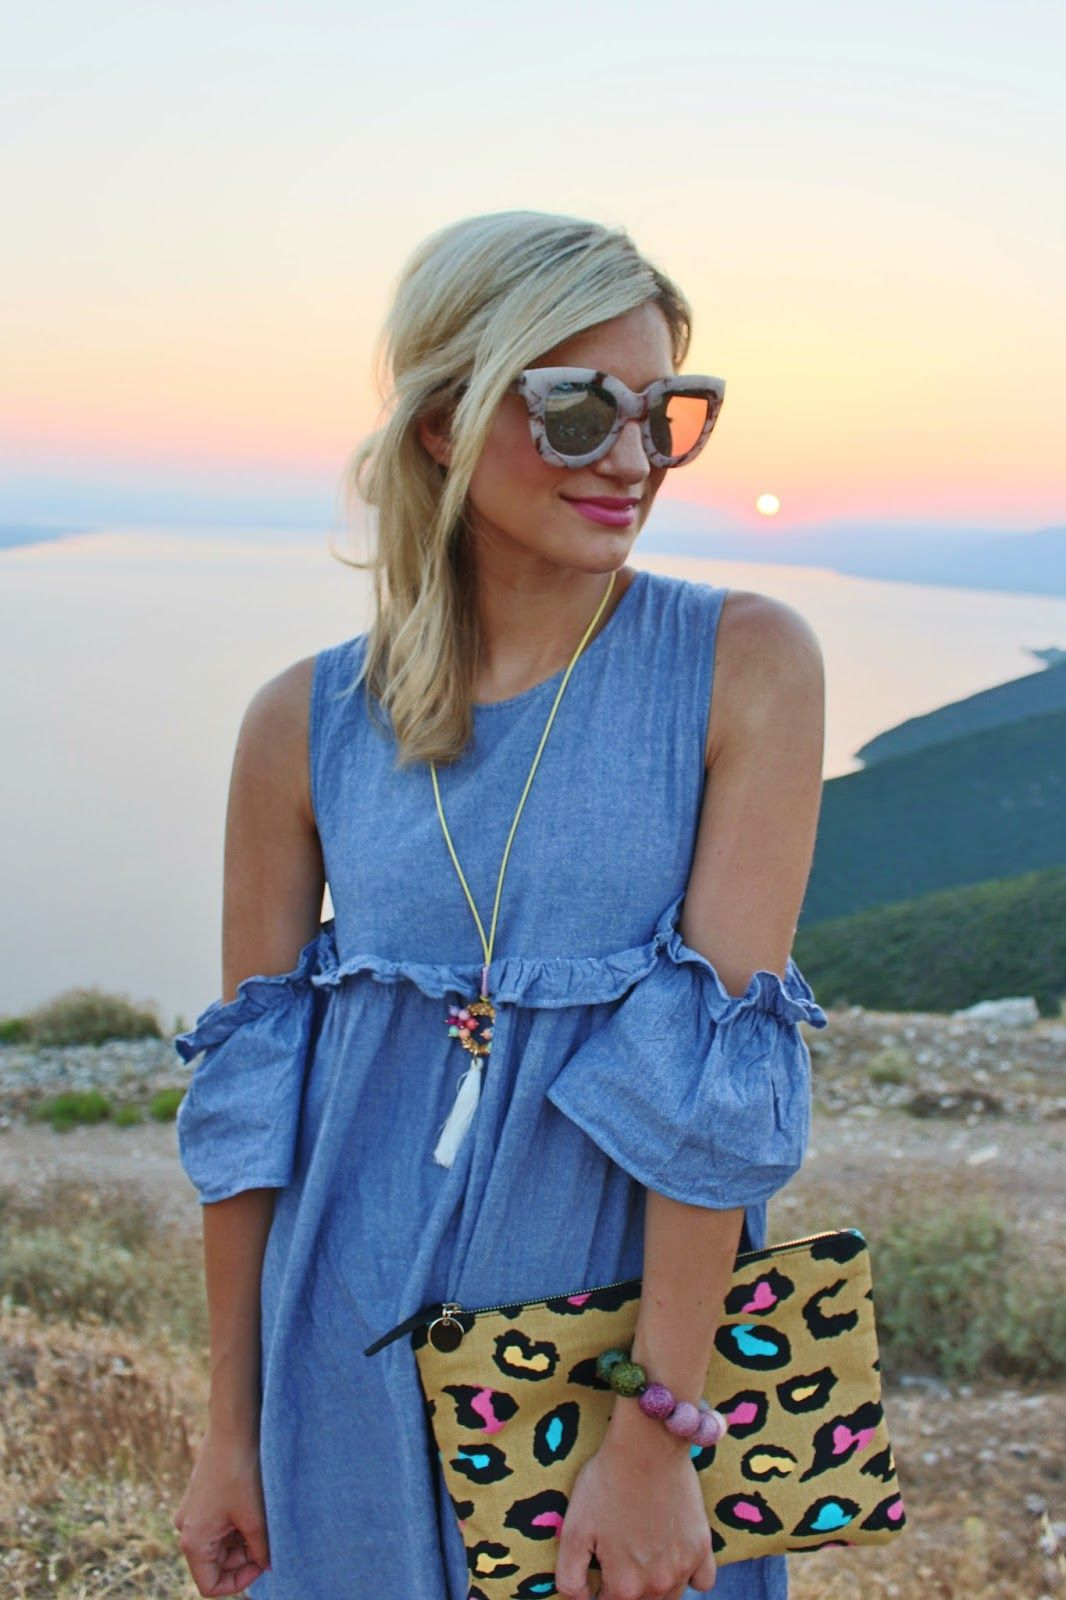 Bijuleni- Boohoo cold shoulder dress with ruffled sleeves and Quay Australia marble sunglasses